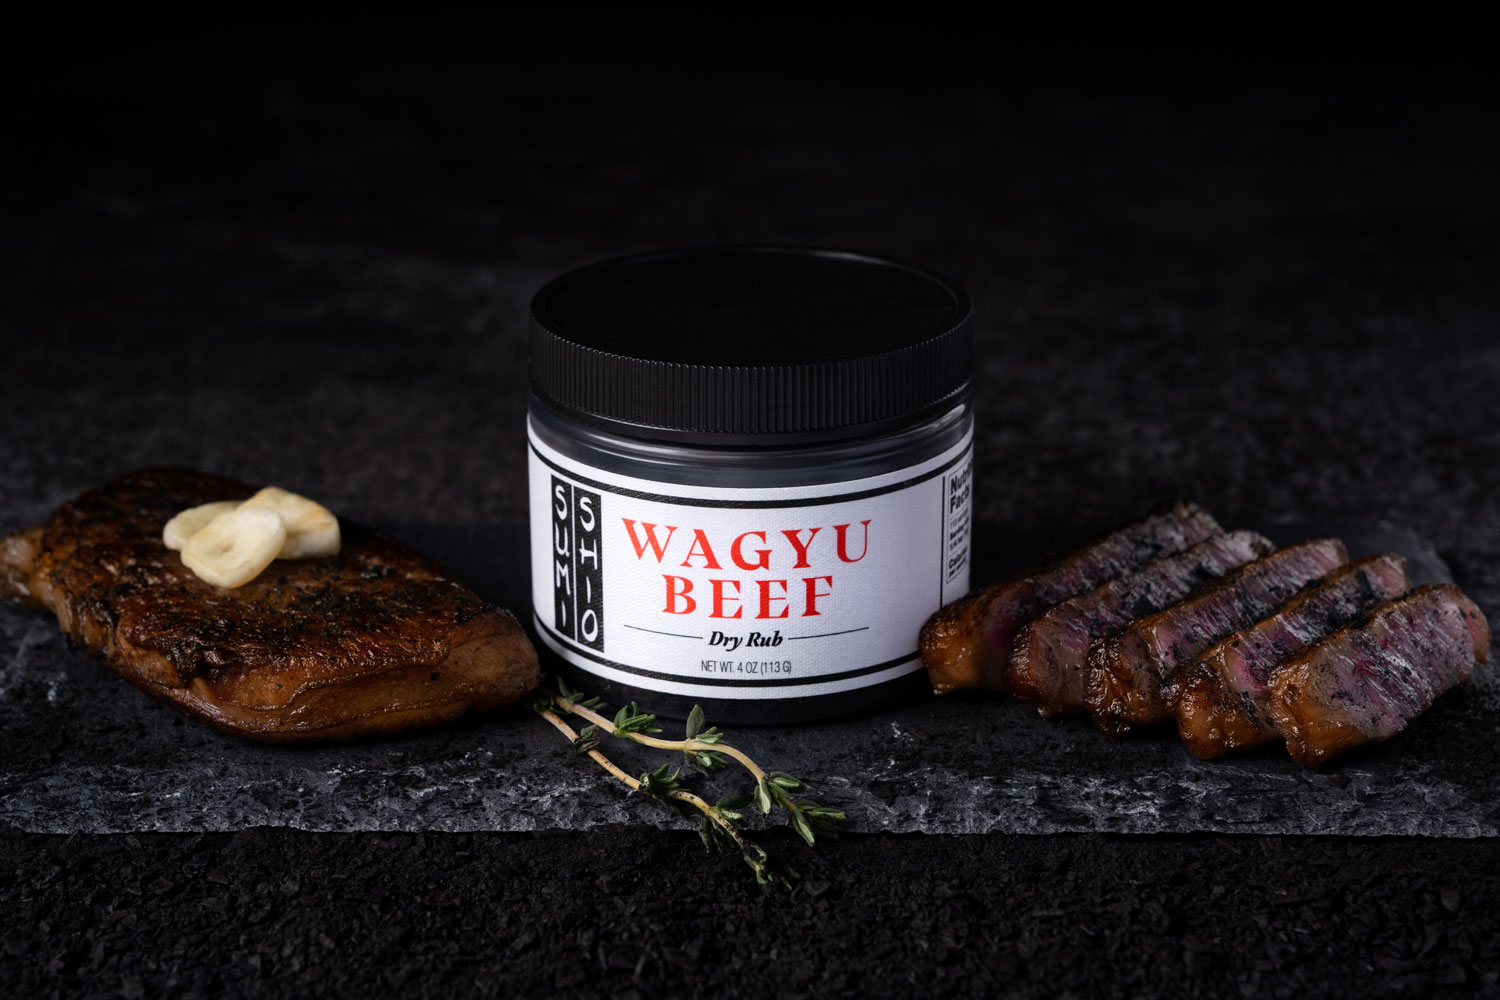 Sumi Shio Wagyu Beef Dry Rub with two A5 Wagyu Steaks on Granite Countertop